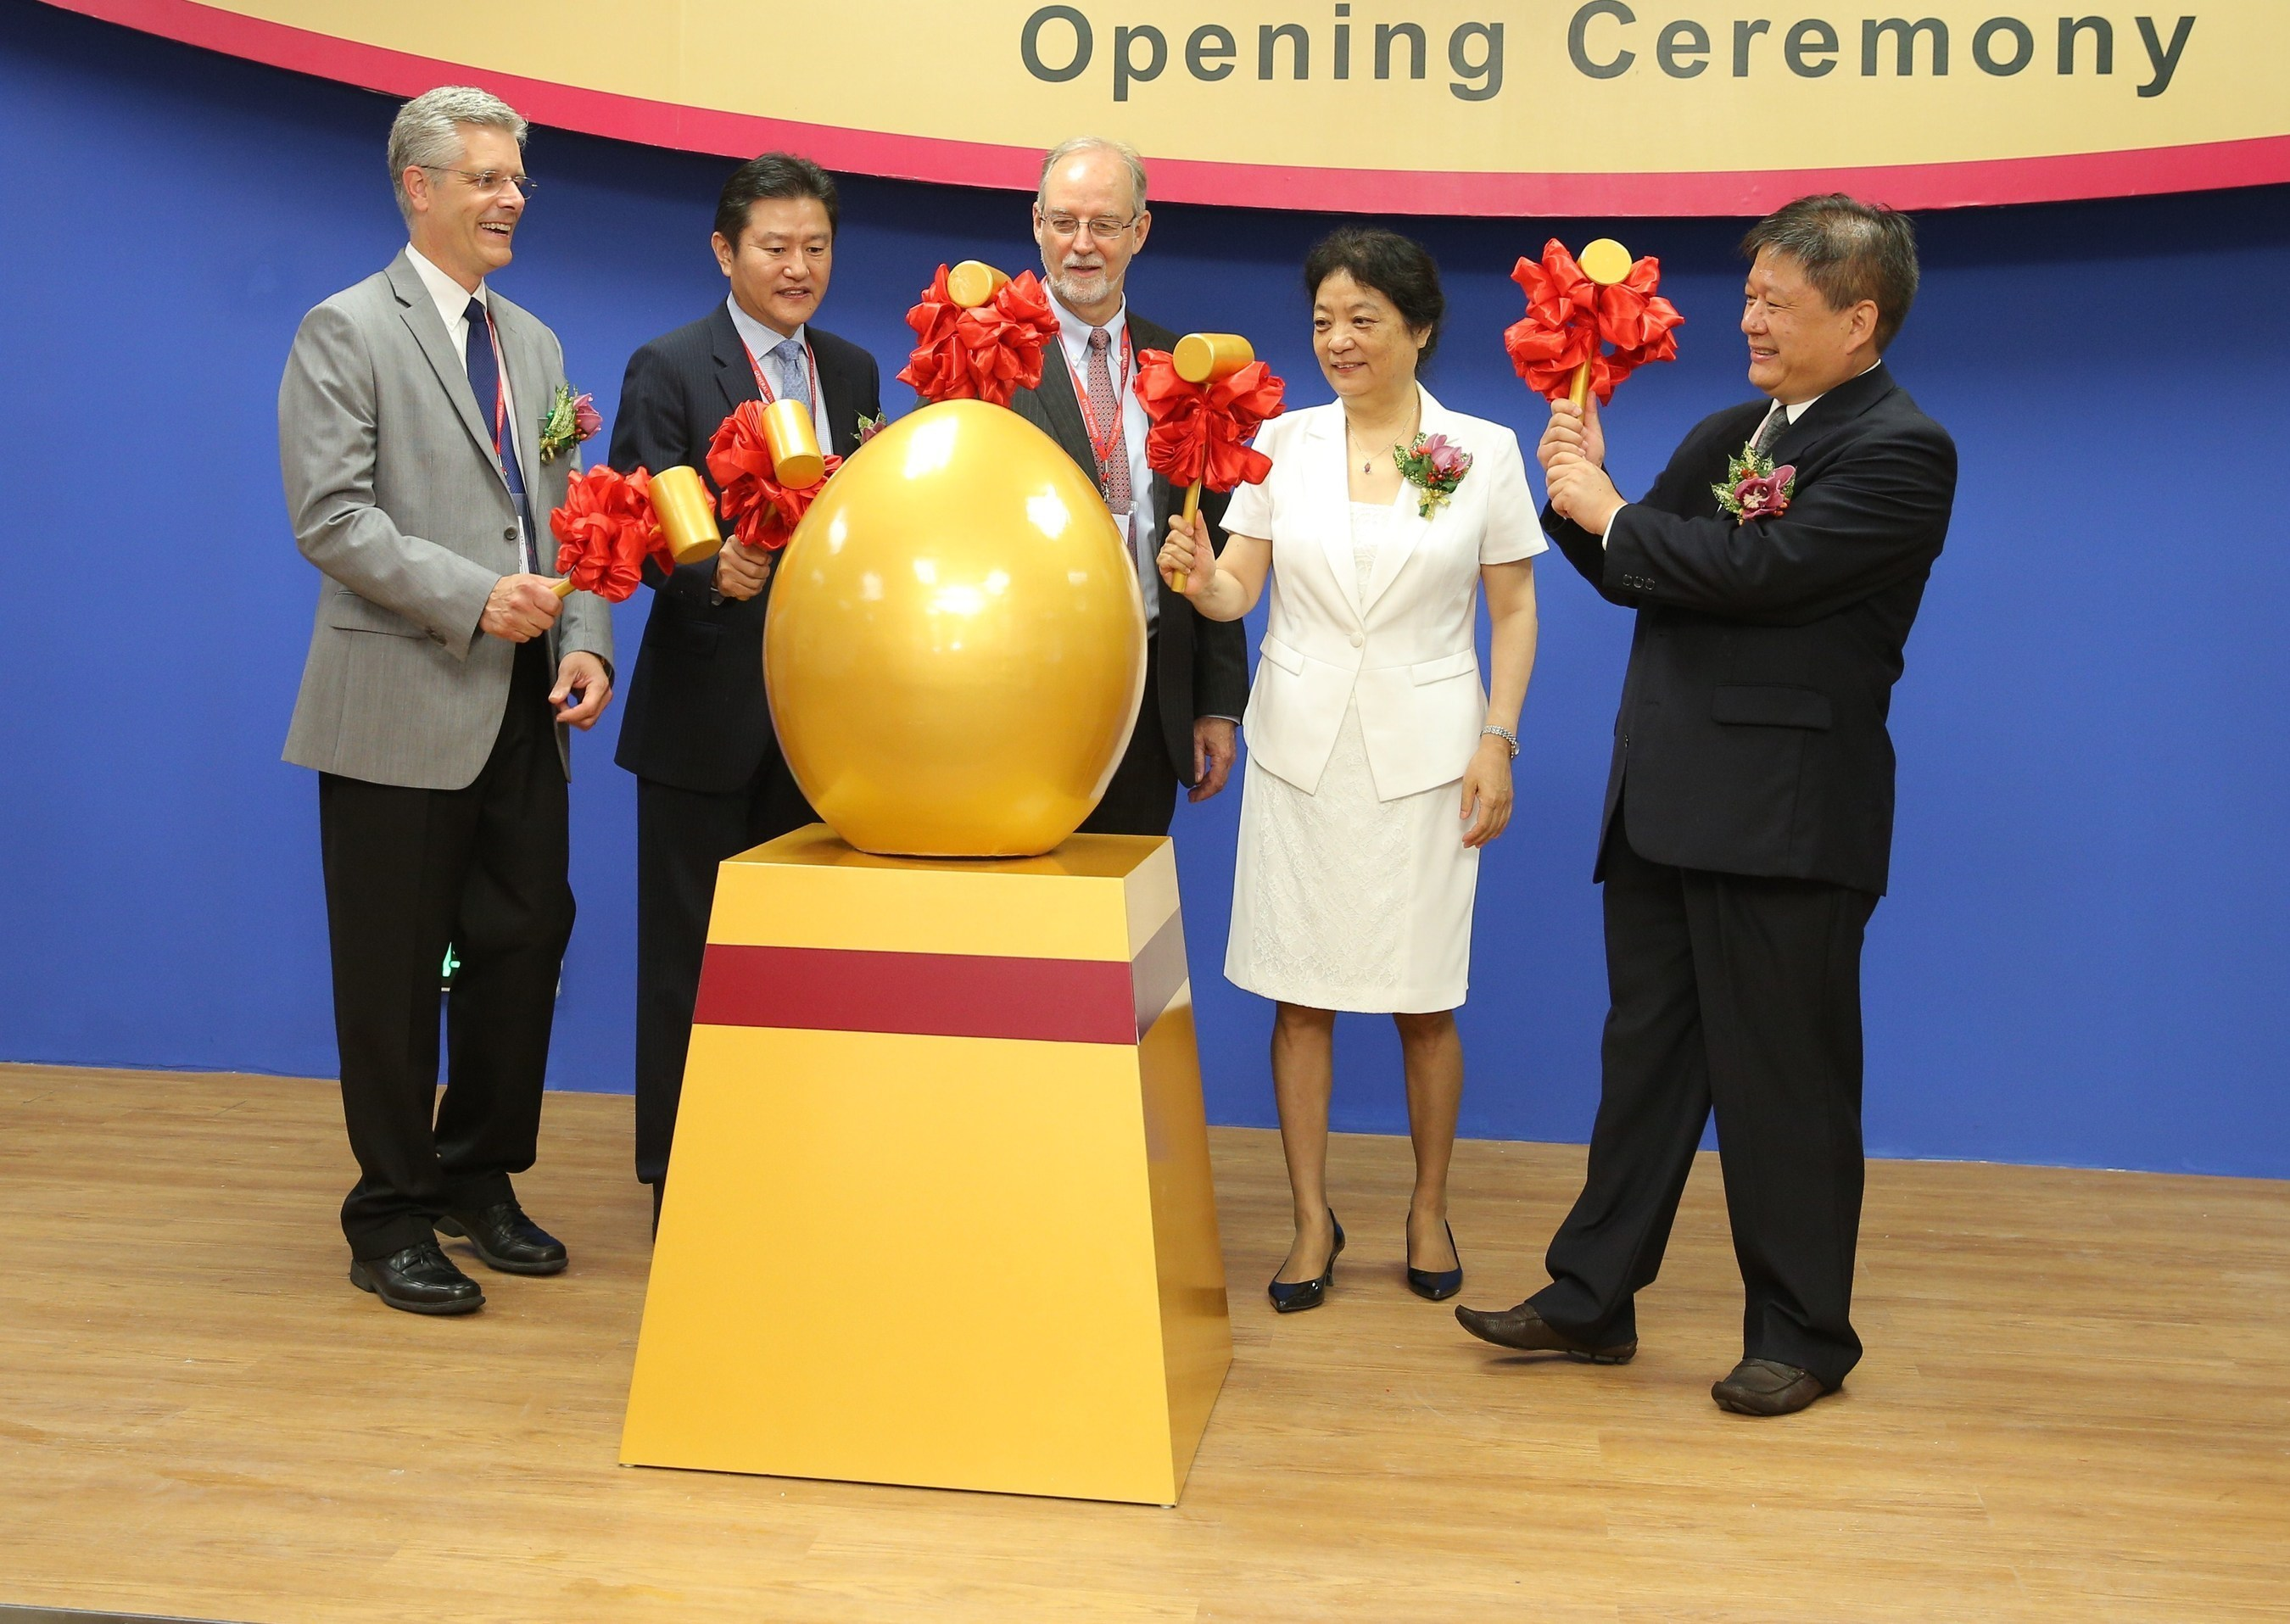 General Mills leaders and Chinese officials are ready to break a golden egg to symbolize the opening of the new General Mills innovation center in China.  Pictured from left to right: General Mills executive vice president and president of Innovation, Technology and Quality Peter Erickson, senior vice president and president of General Mills China, Gary Chu, General Mills Chairman and CEO Ken Powell, CIFST President Meng Suhe, and Sanlin Party Secretary Chu Mingchang. (PRNewsFoto/General Mills)